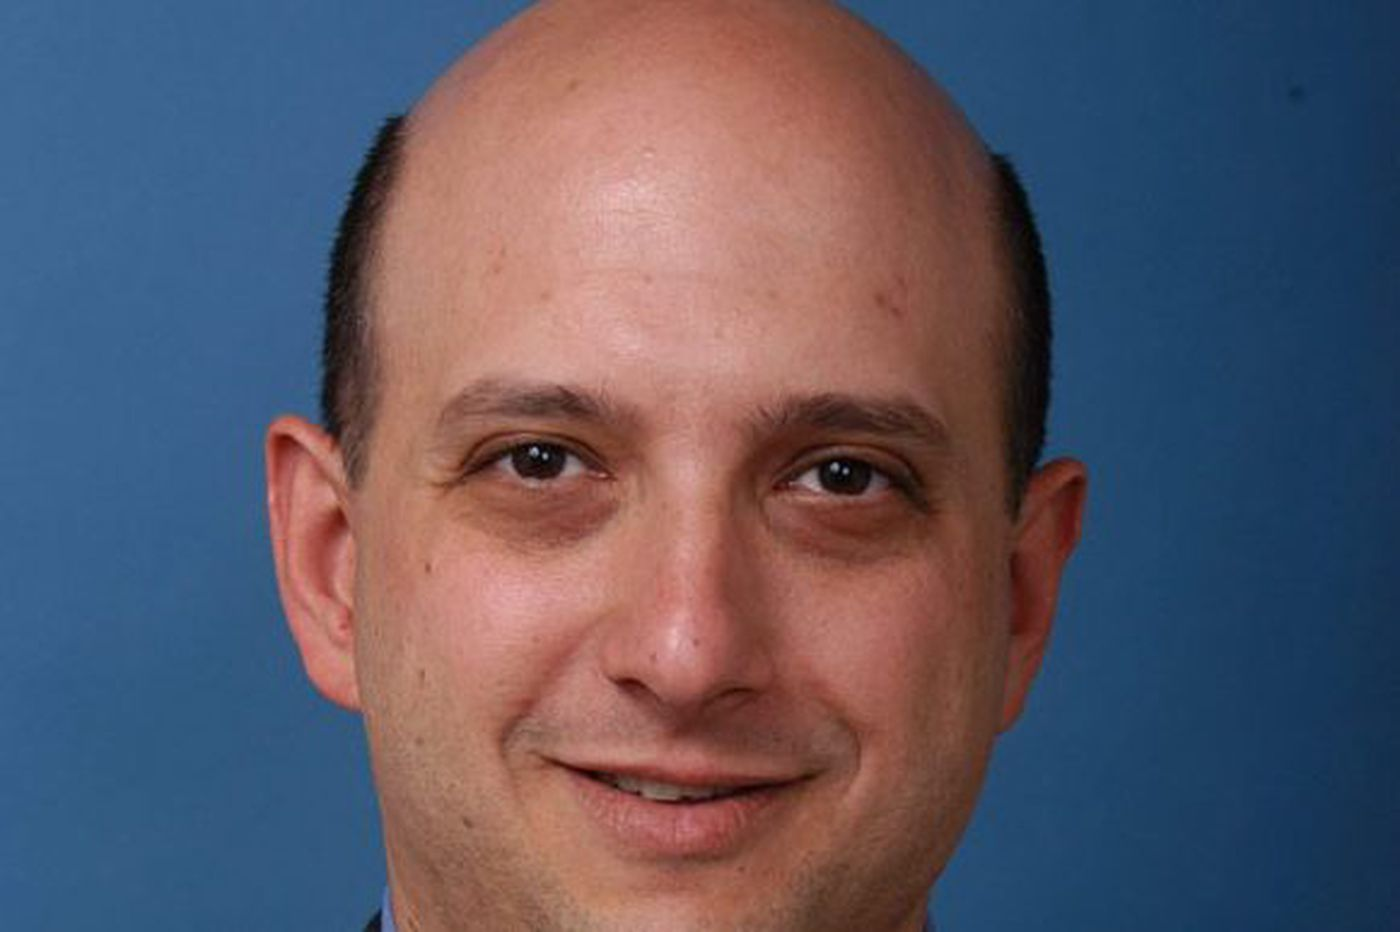 Vereit to pay Vanguard $90 million for Schorsch real estate firm losses